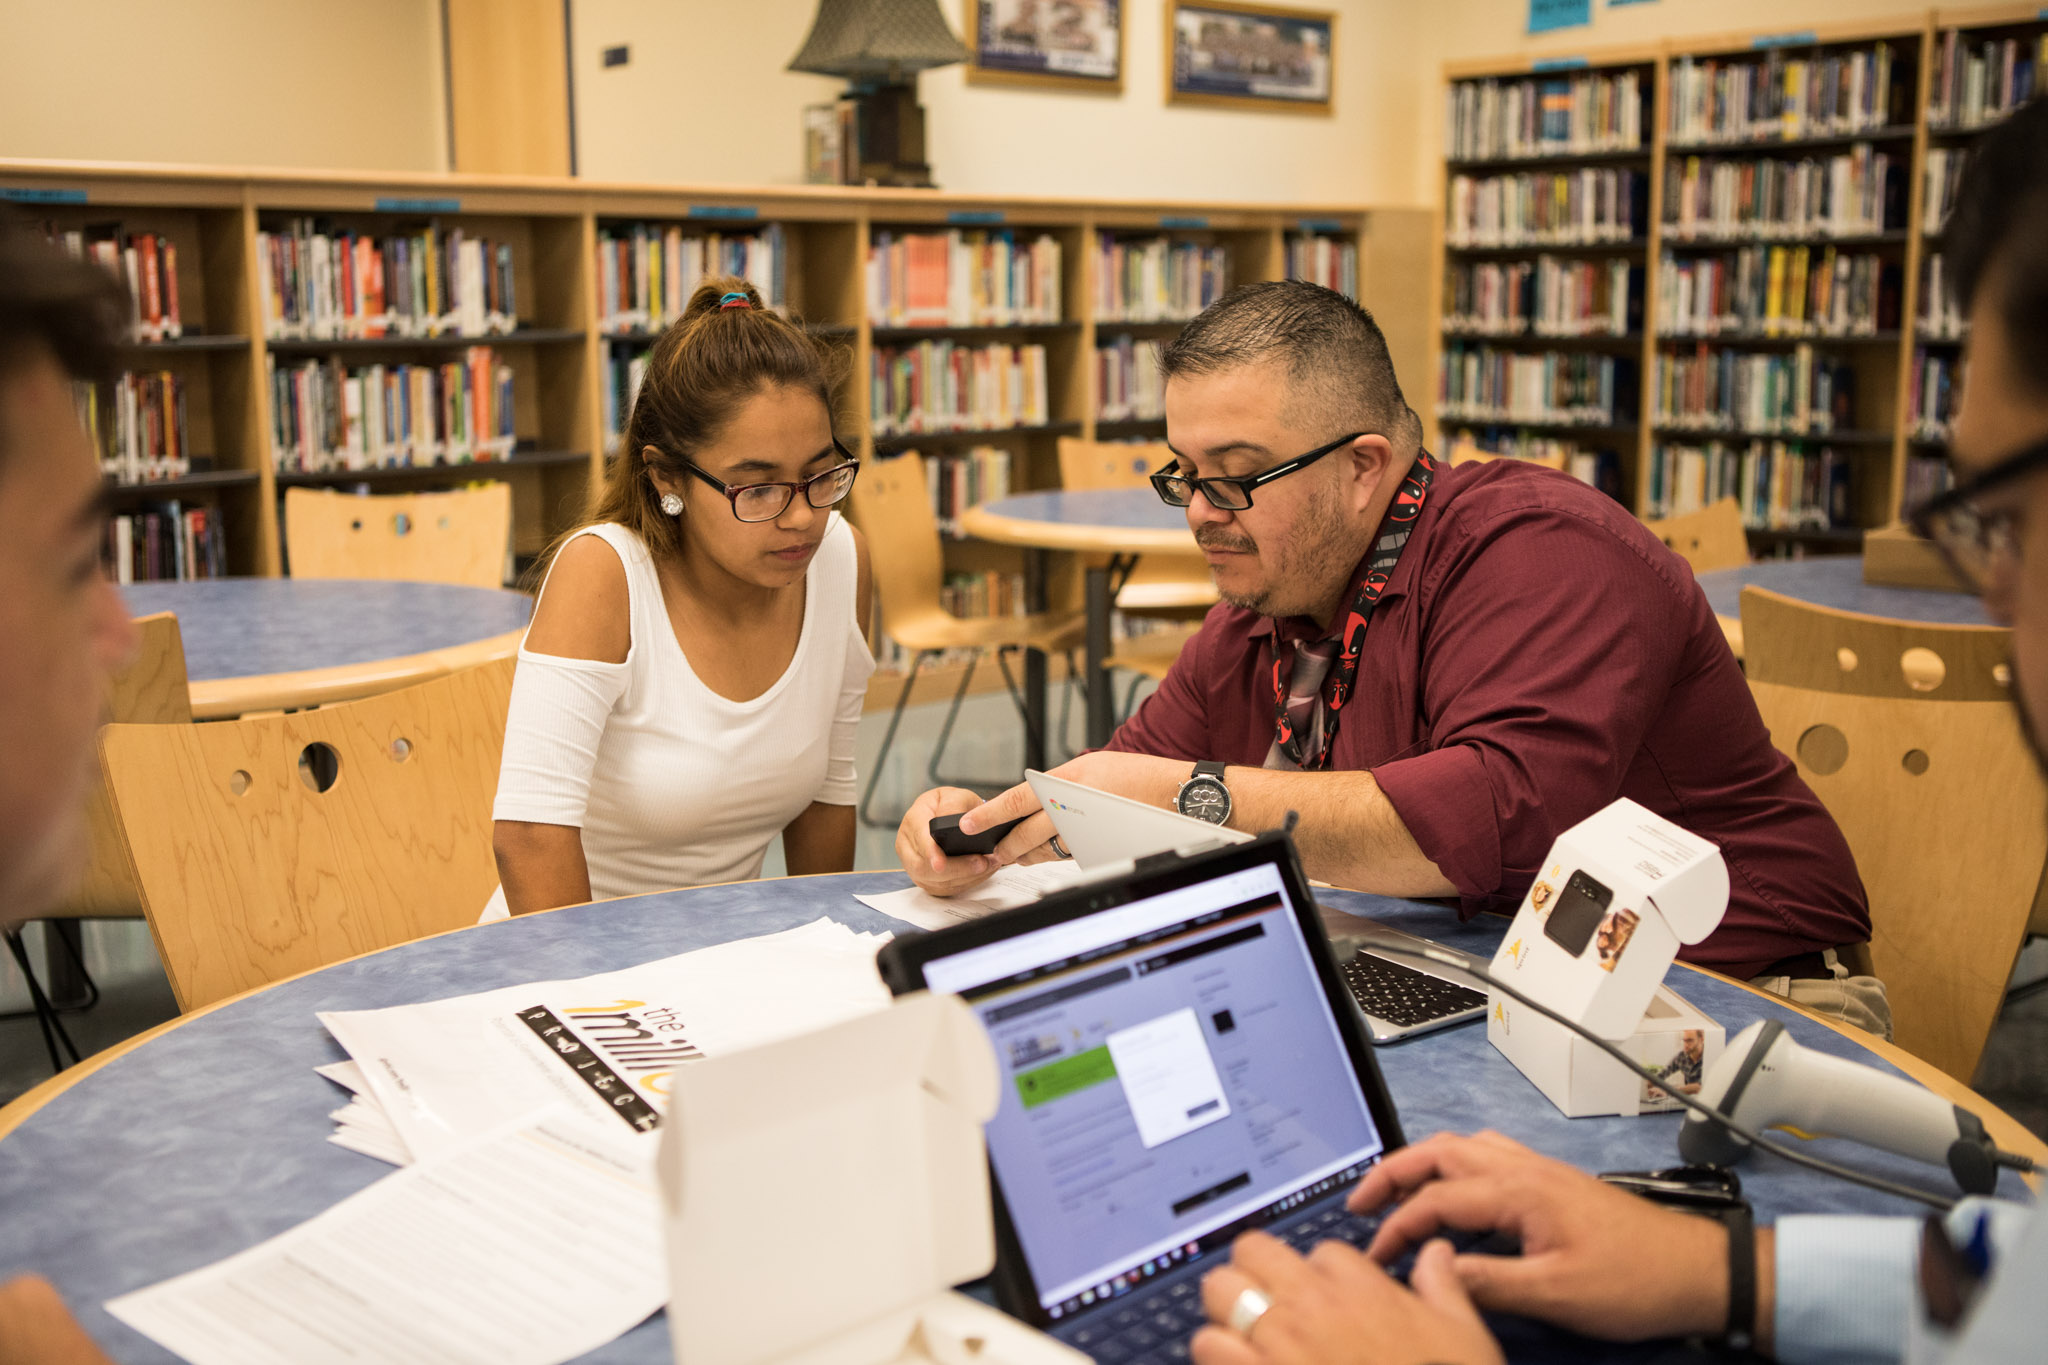 SSAISD Technology Support Specialist Mike Ortiz Jr. explains how to use the personal hotspot to Ariana Livar.